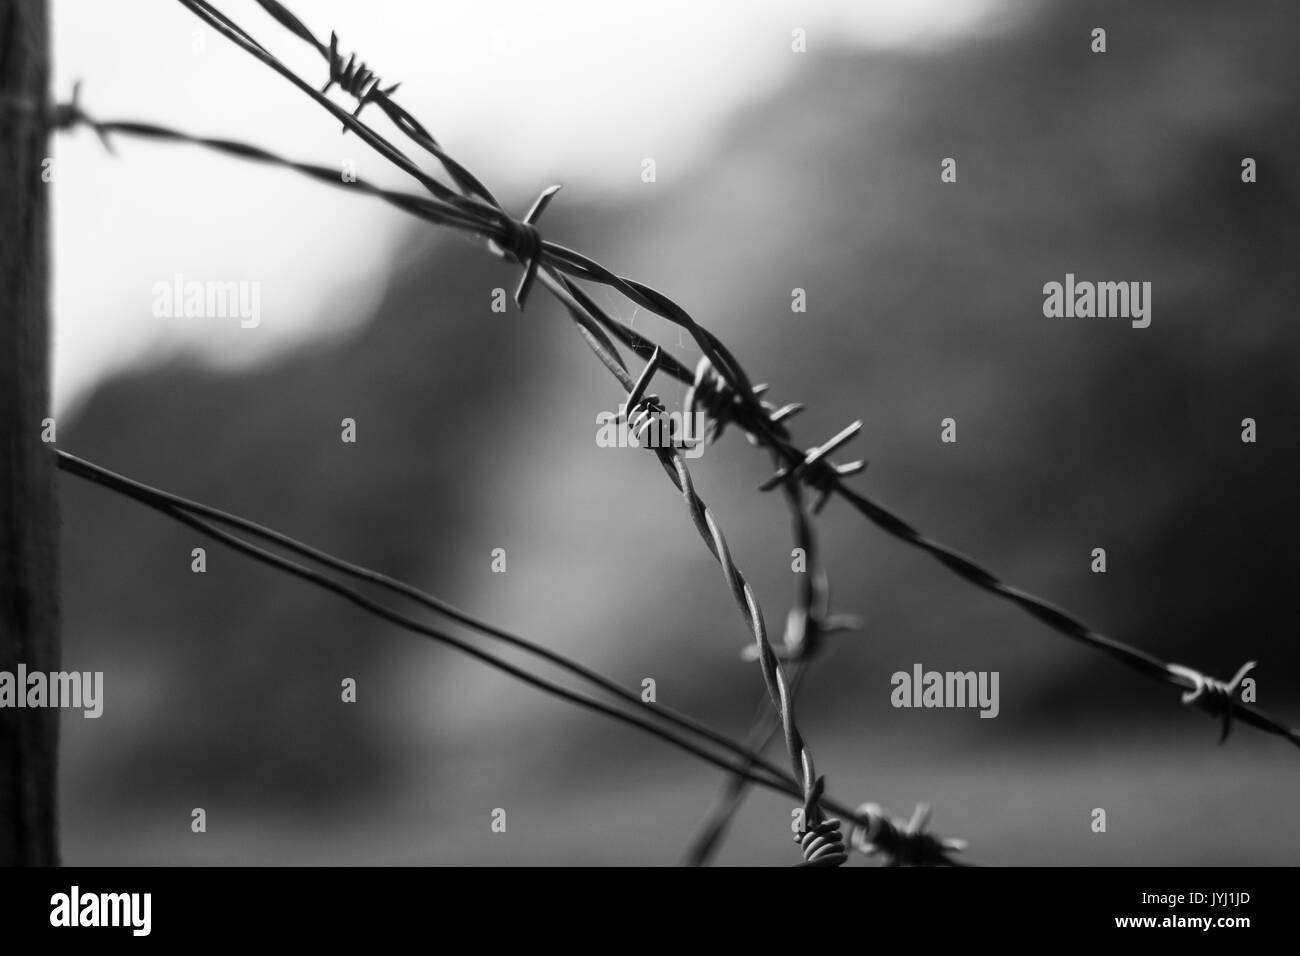 Close up of barbed wire with out of focus background in black and white - Stock Image